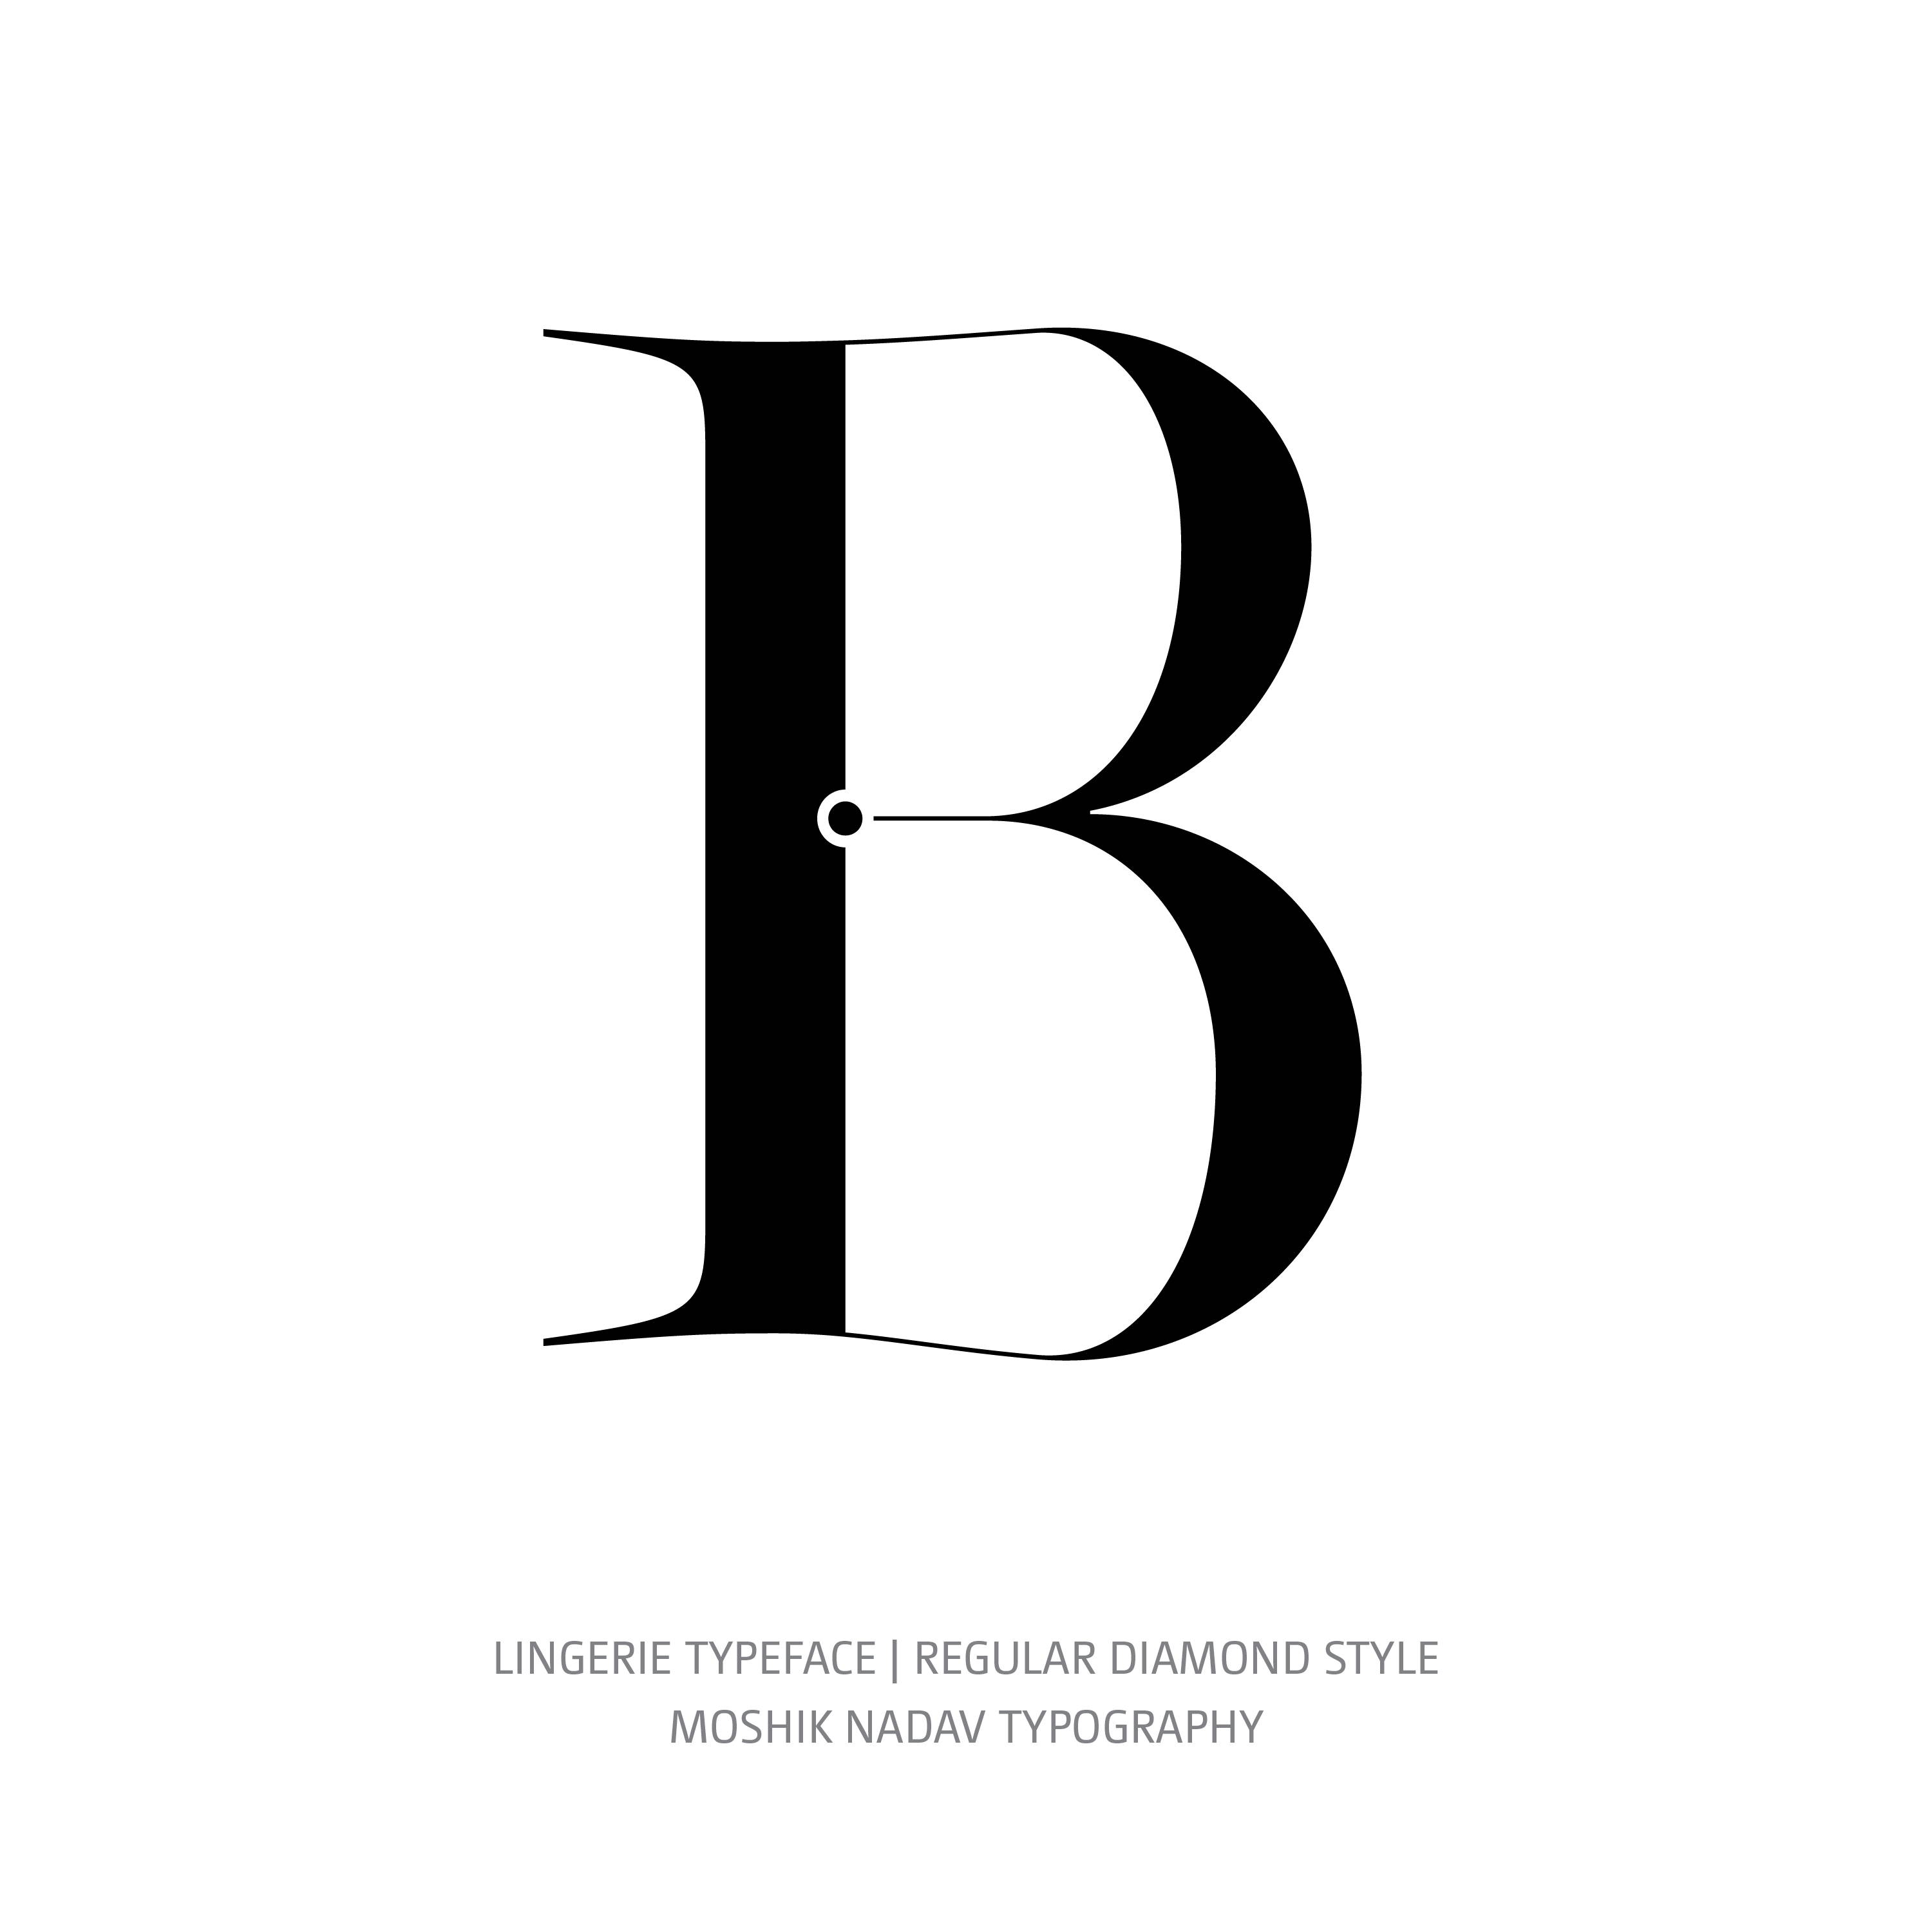 Lingerie Typeface Regular Diamond B